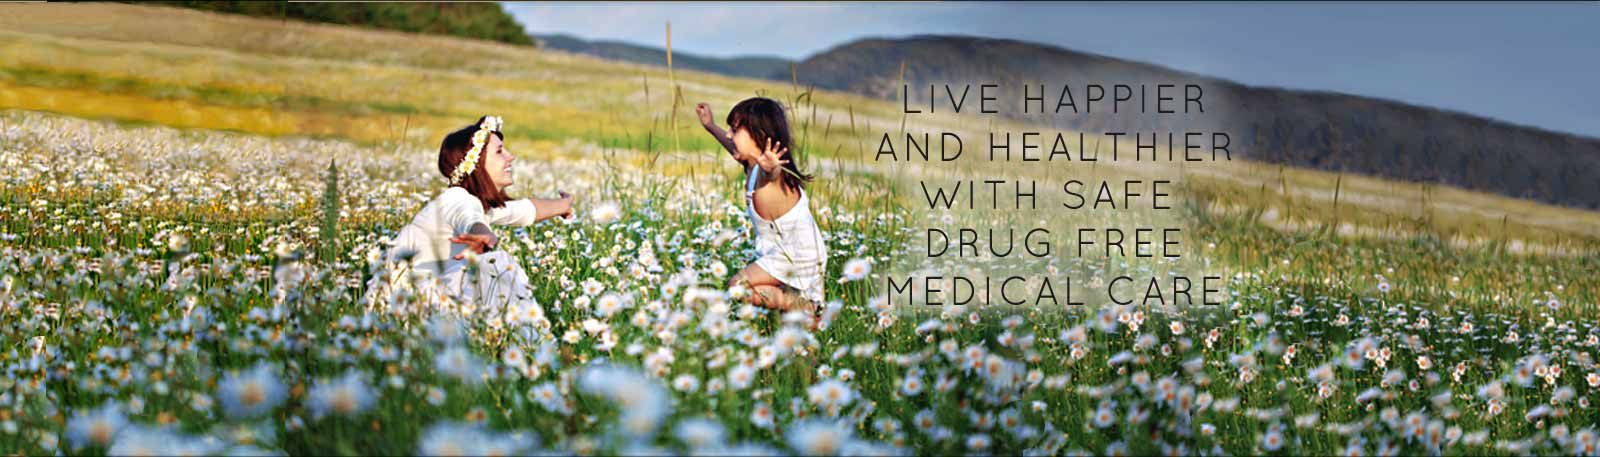 Chiropractic care is drug free